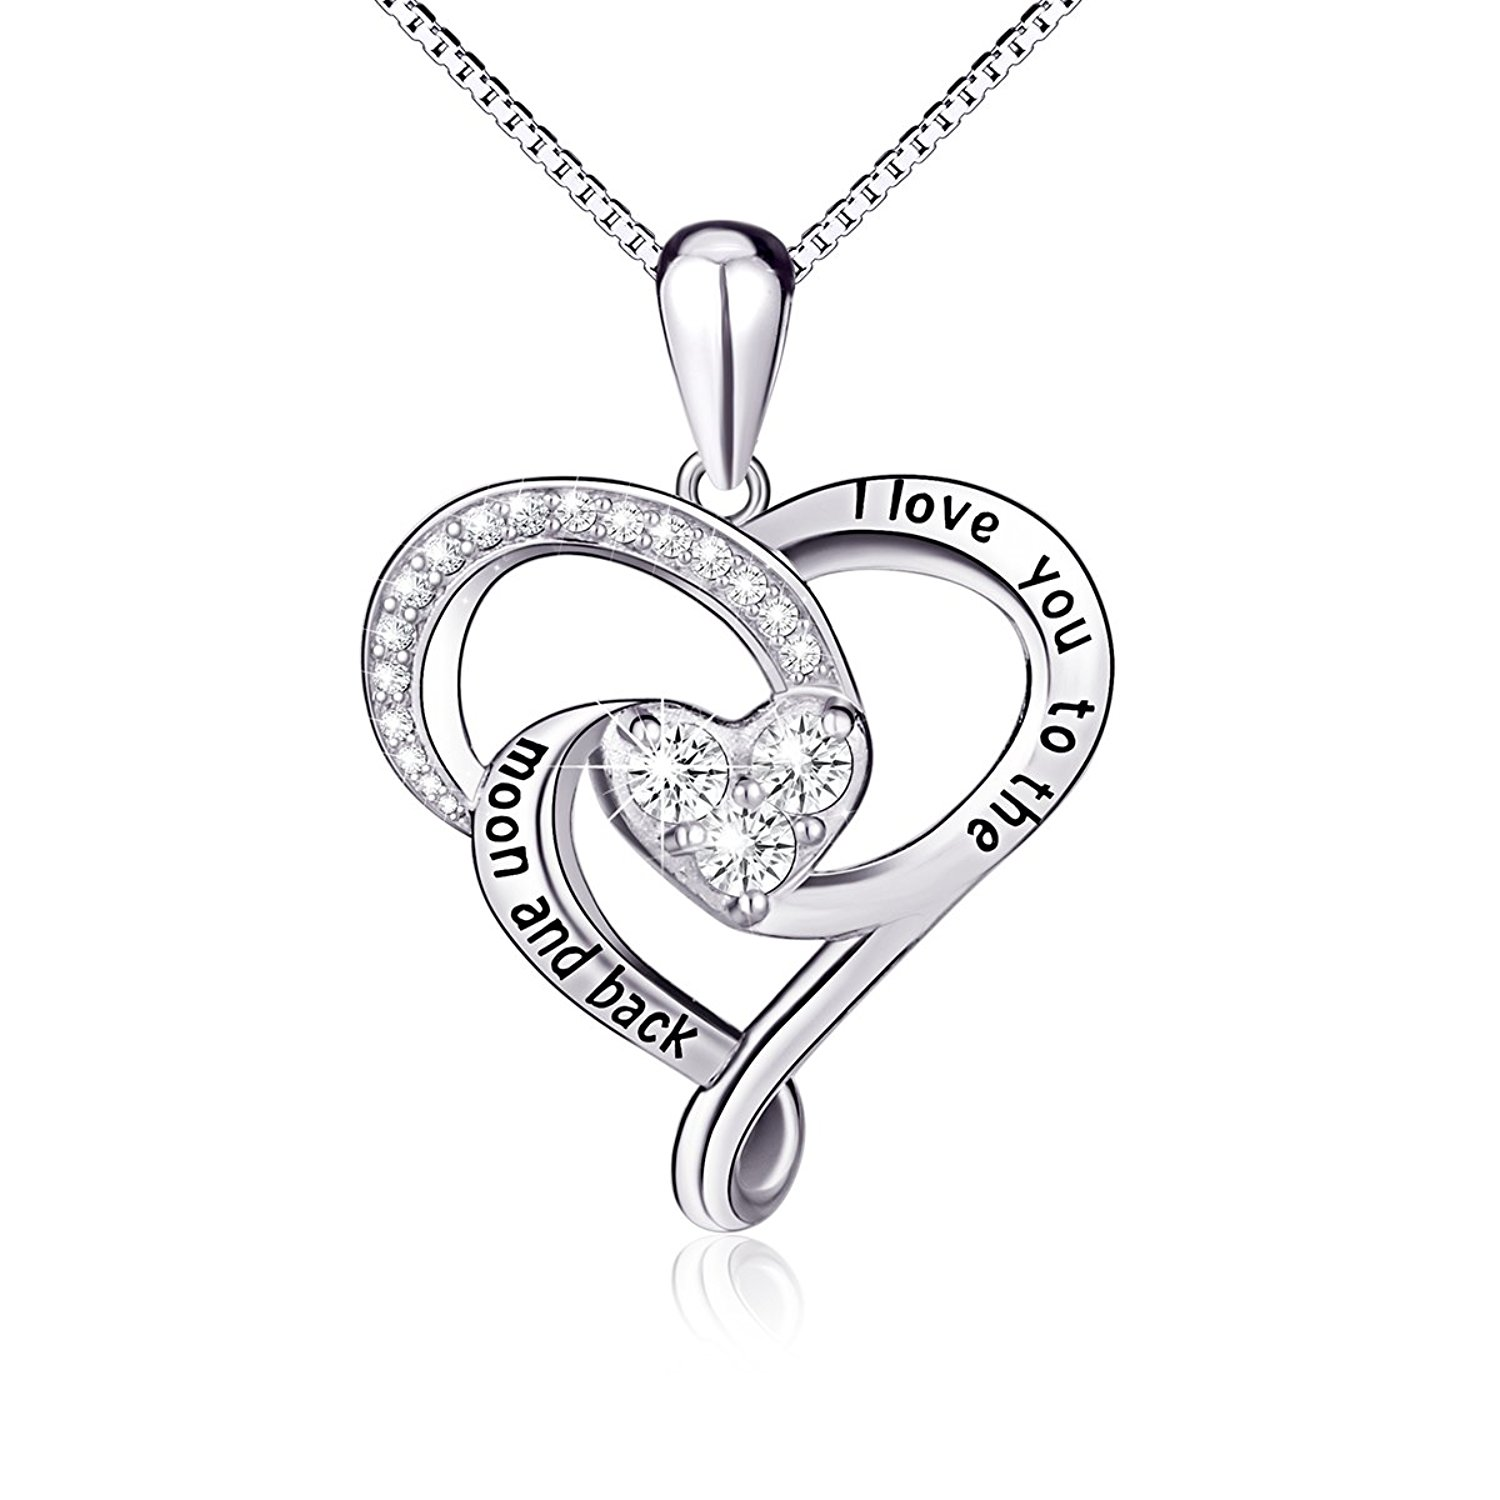 heart pendant necklace 925 sterling silver jewelry  brdkbme